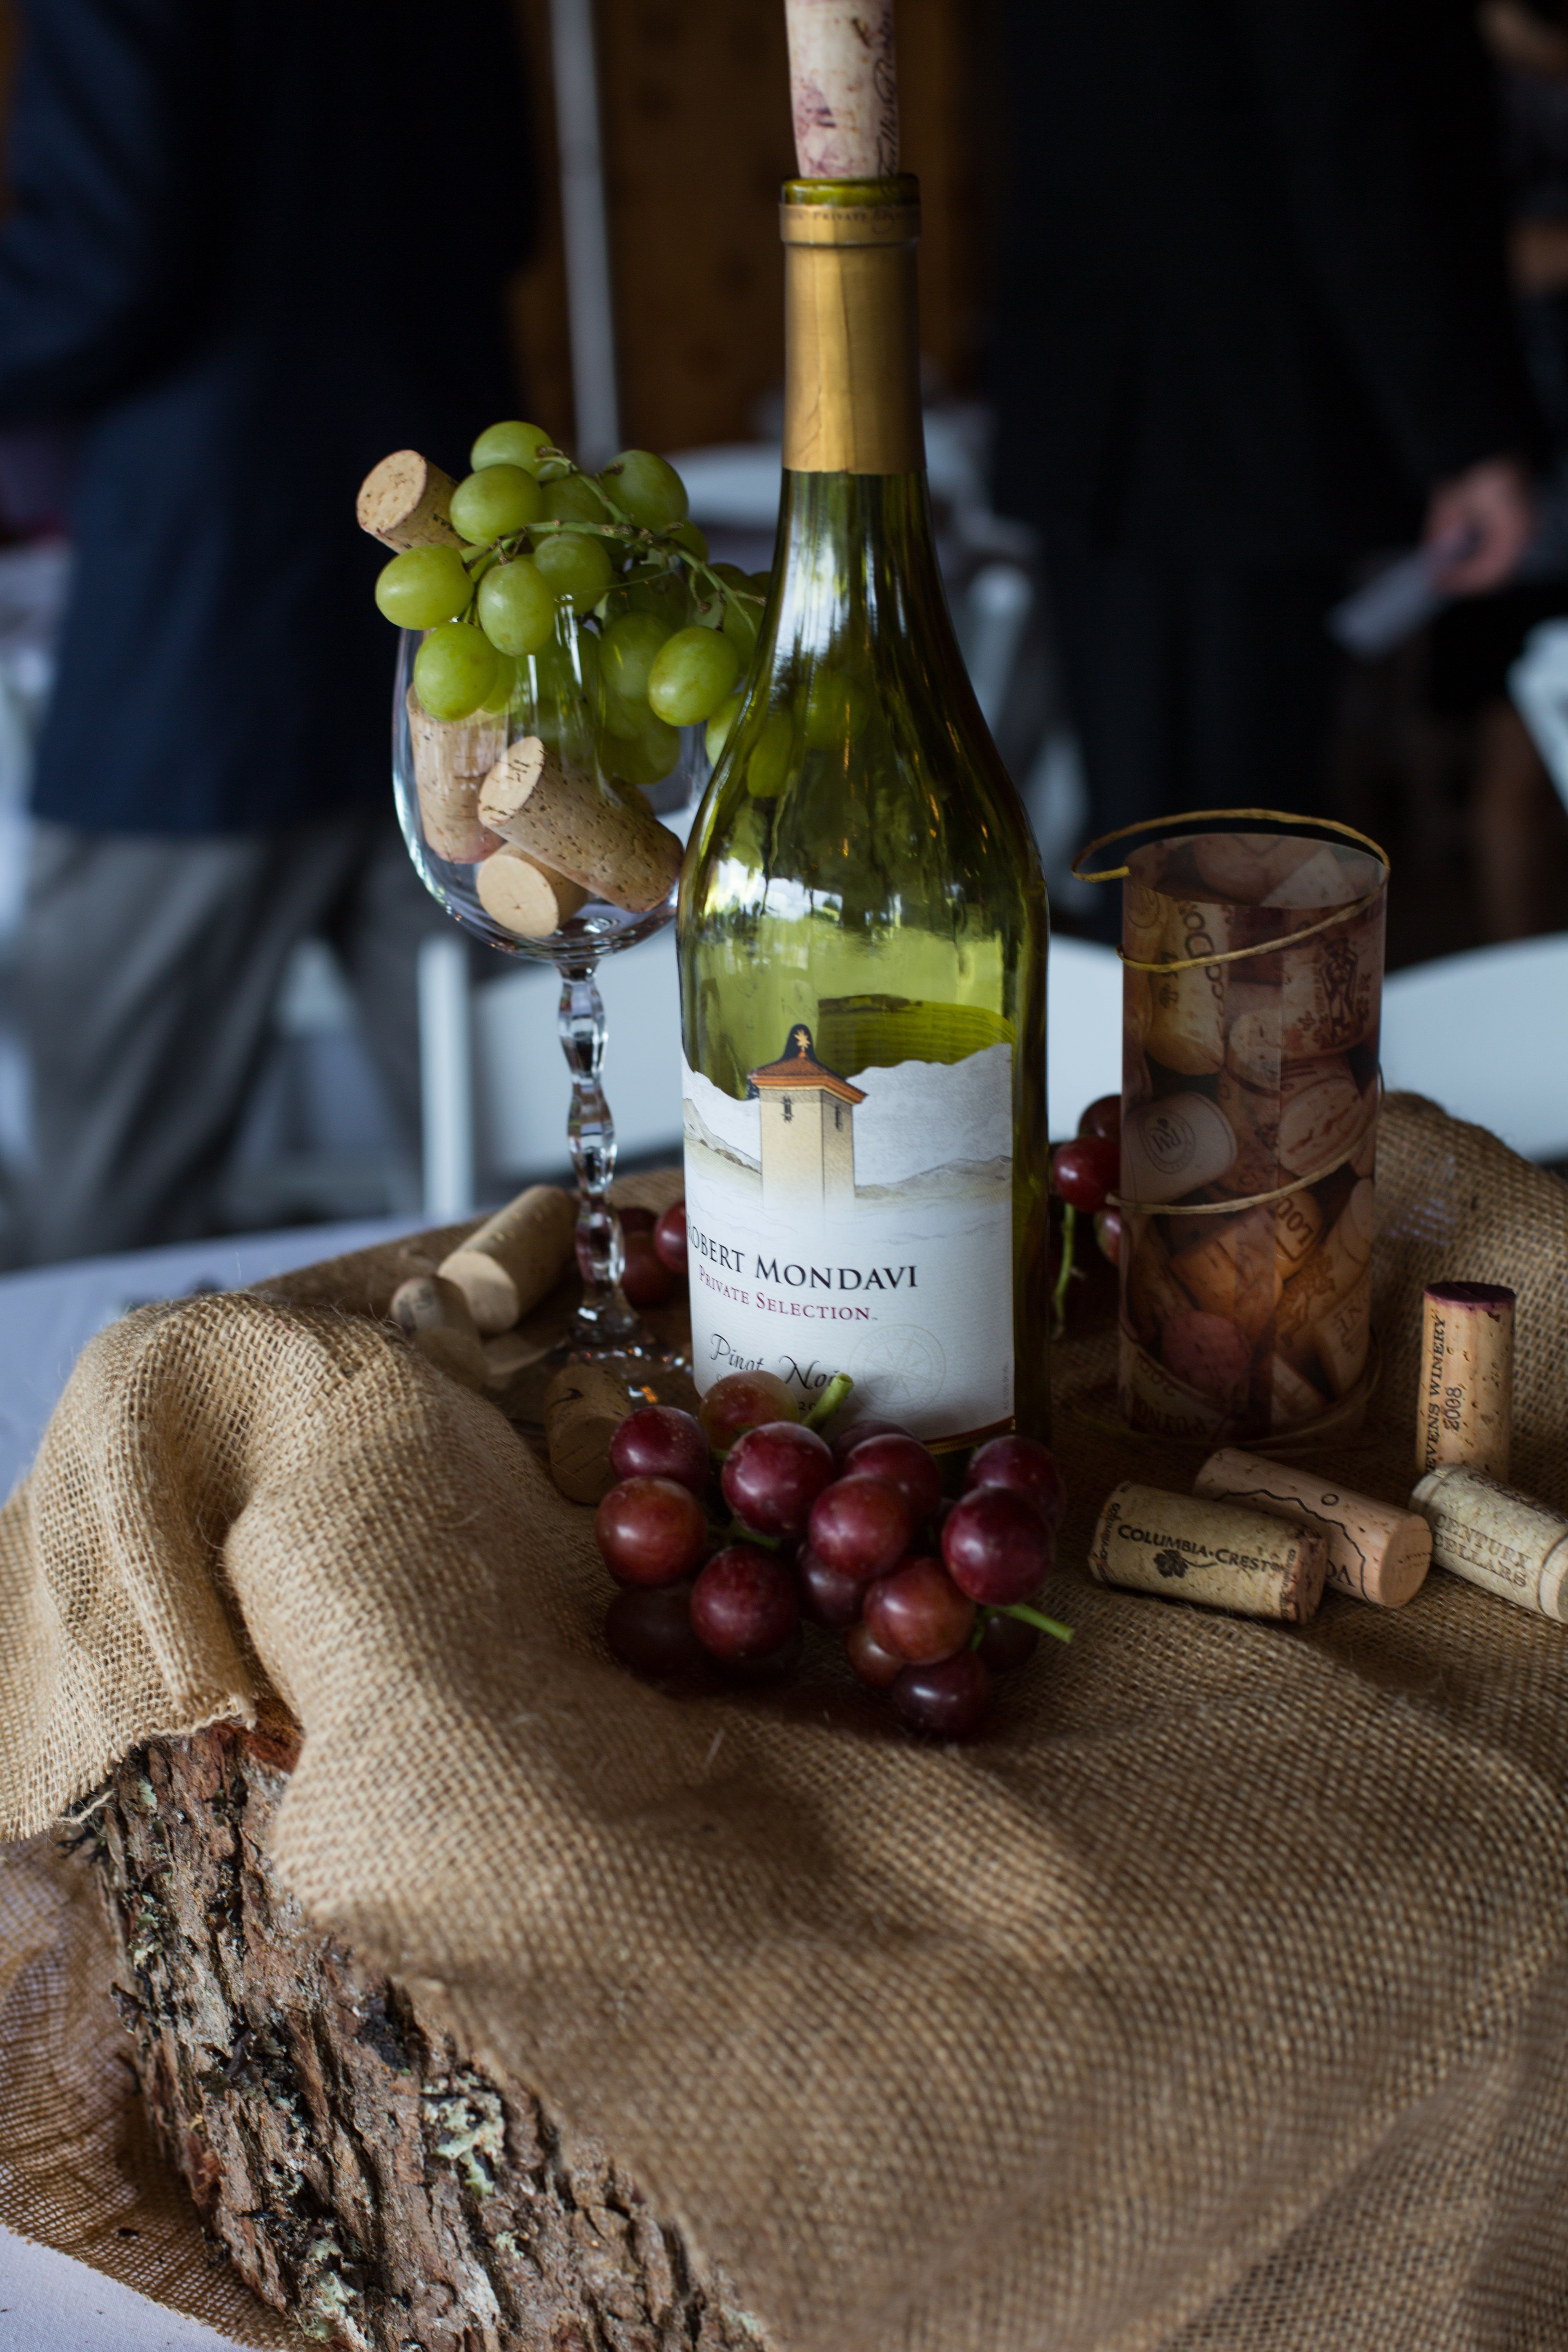 53 vineyard wedding centerpieces to get inspired diy candle wedding centerpieces for wine themed wedding at rustic farm wine glass filled with real grapes and corks wine bottle with cork tealight candle inside diy junglespirit Image collections